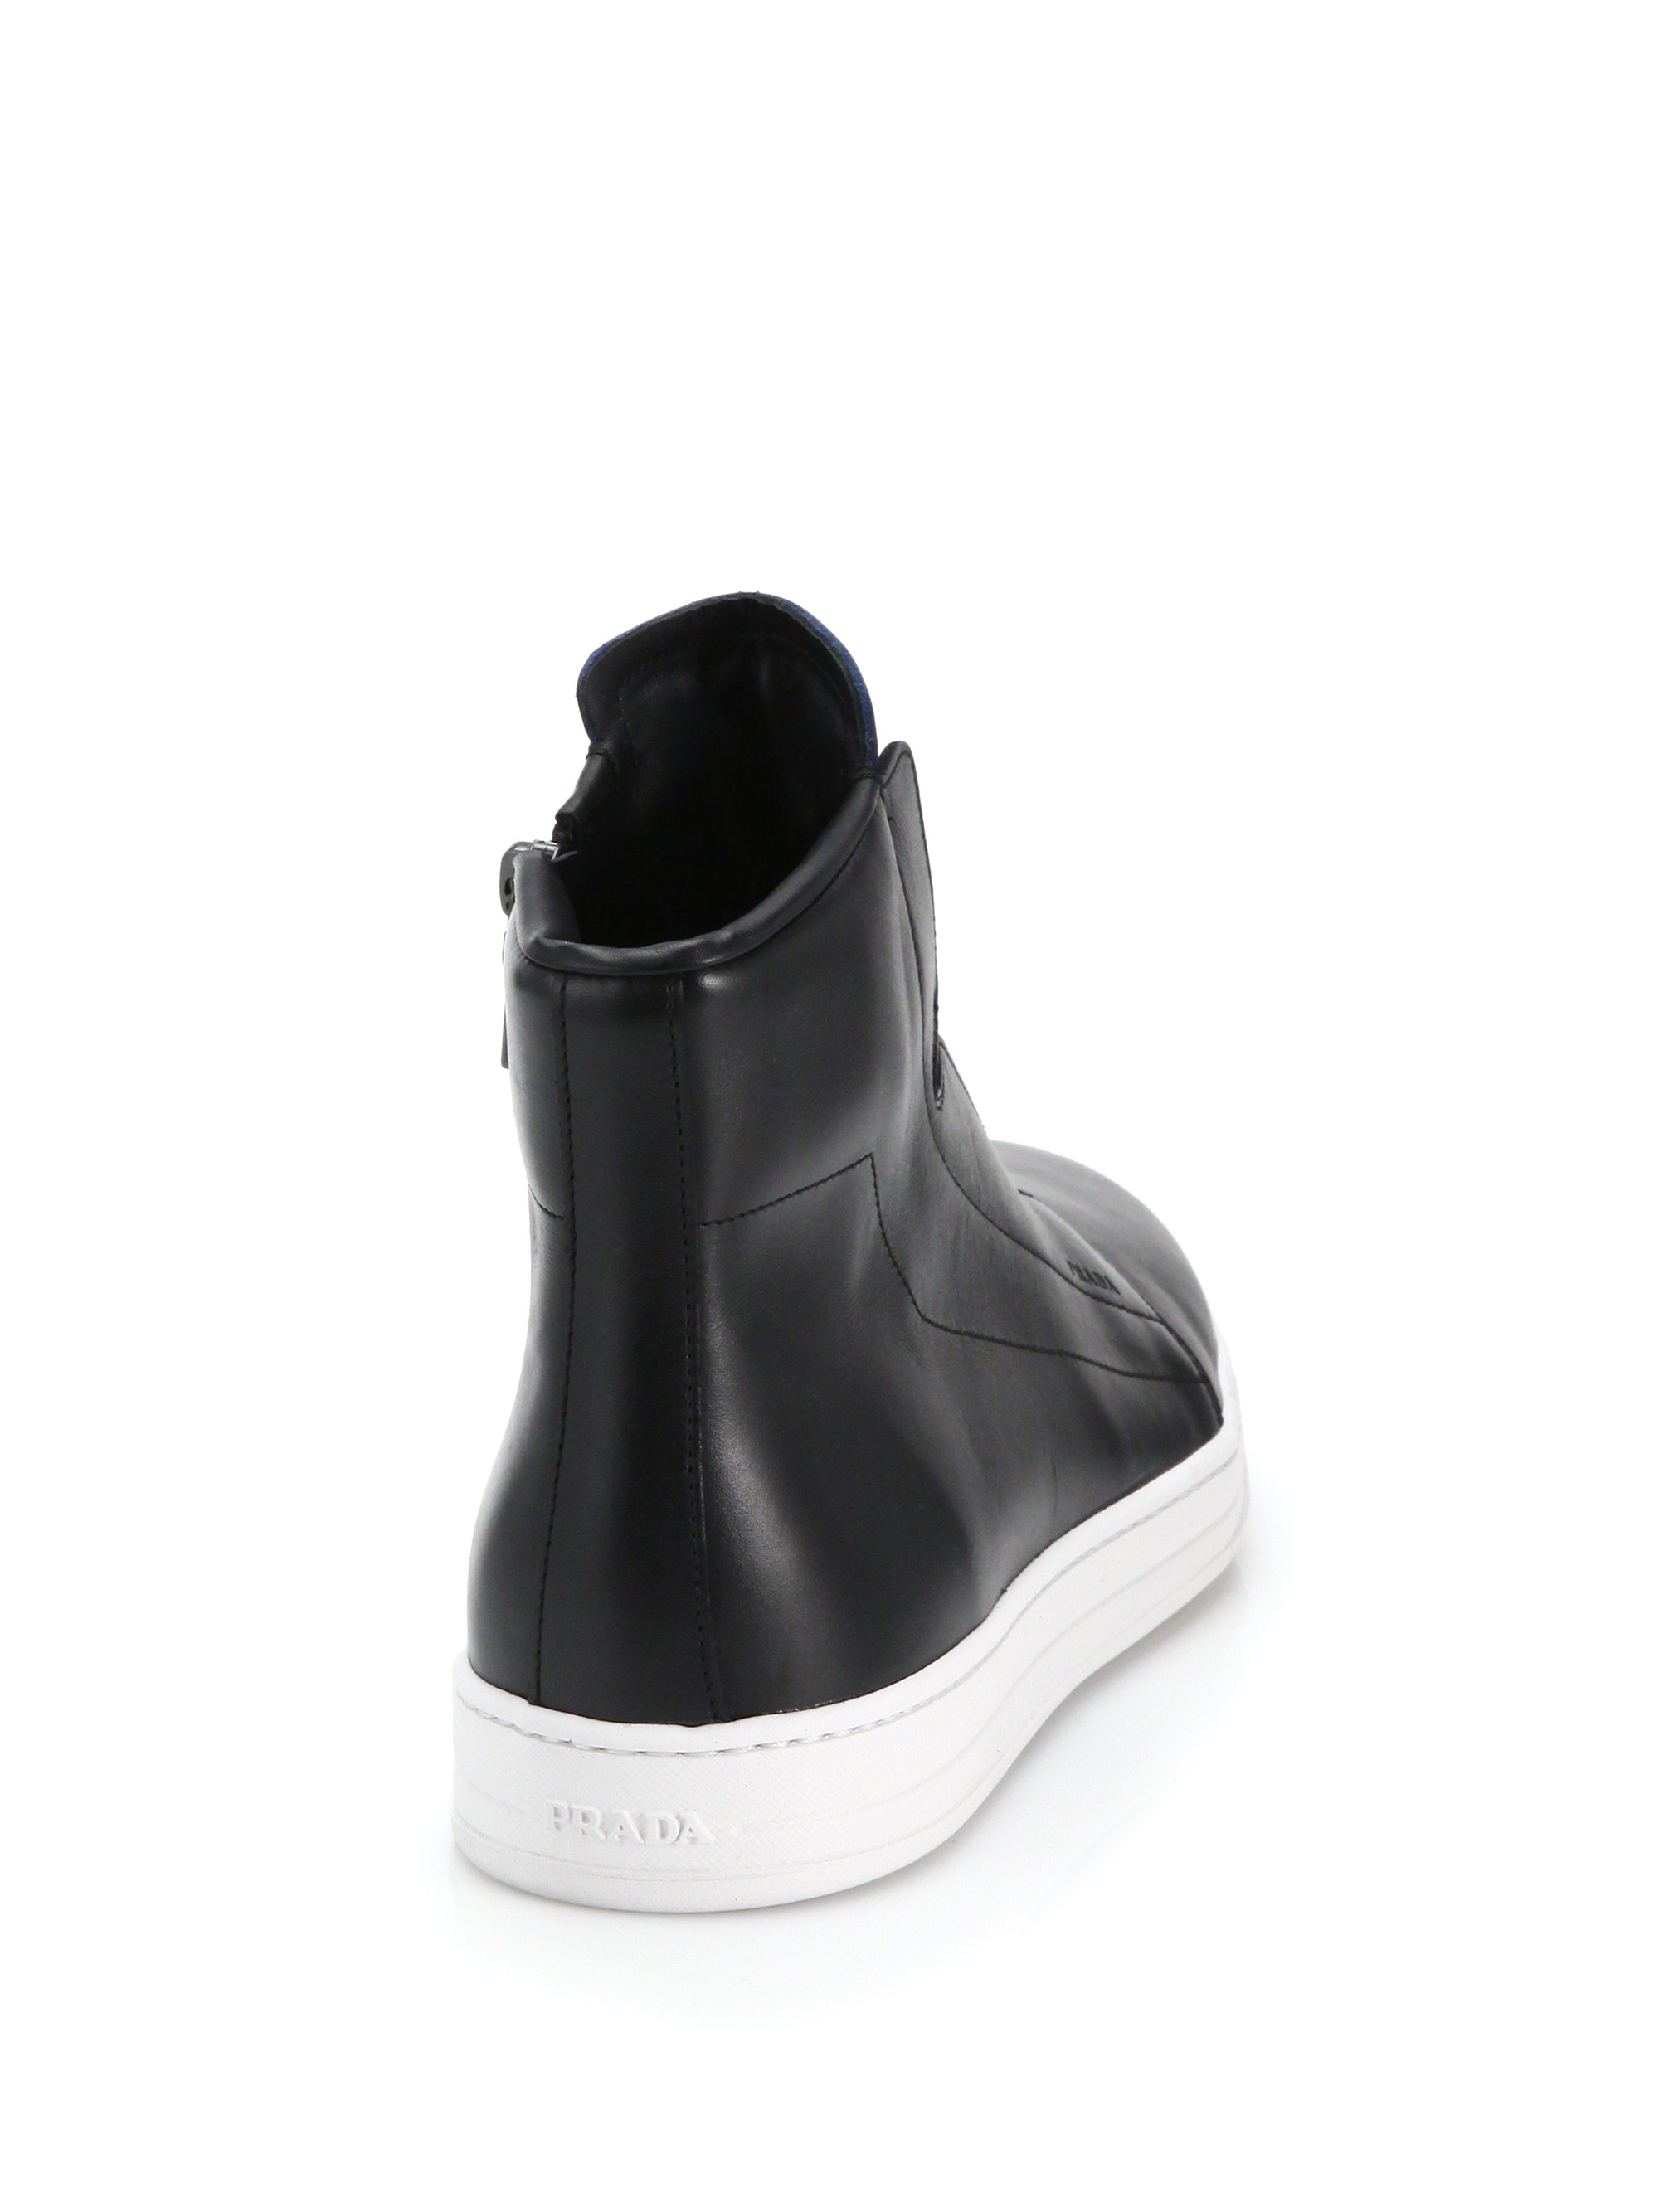 Burberry Mens Shoes Hi Top